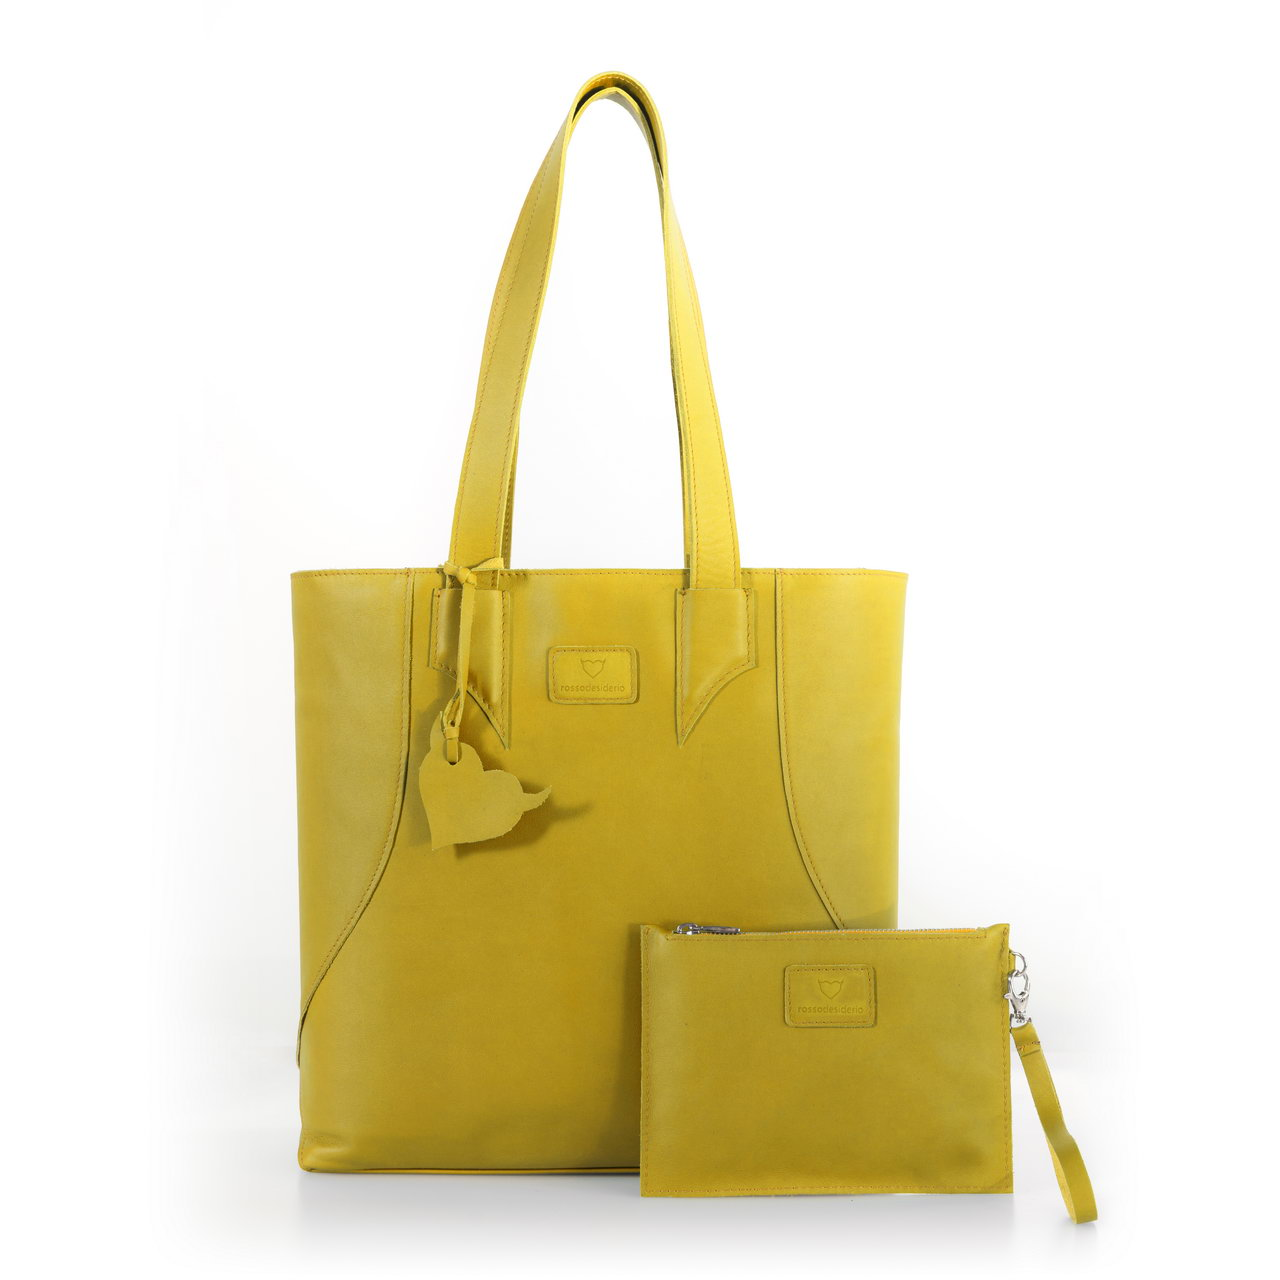 Brava Yellow, shopper bag made with real leather